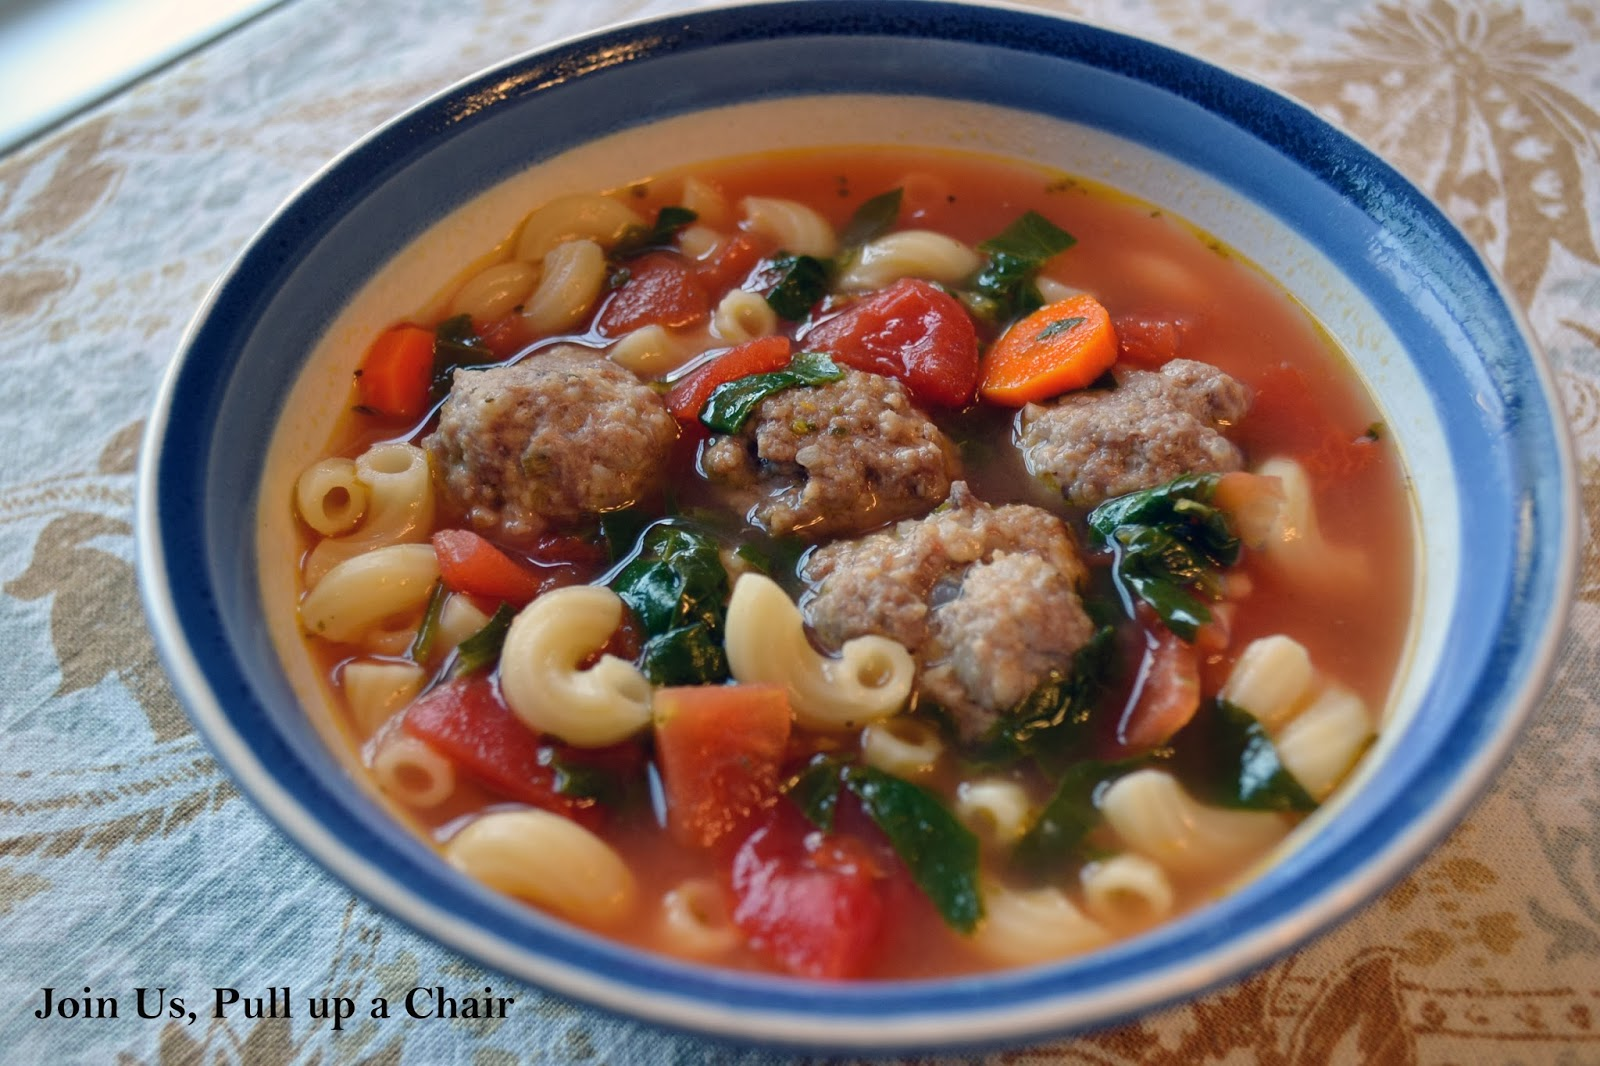 Join us, pull up a chair: Italian Meatball Soup